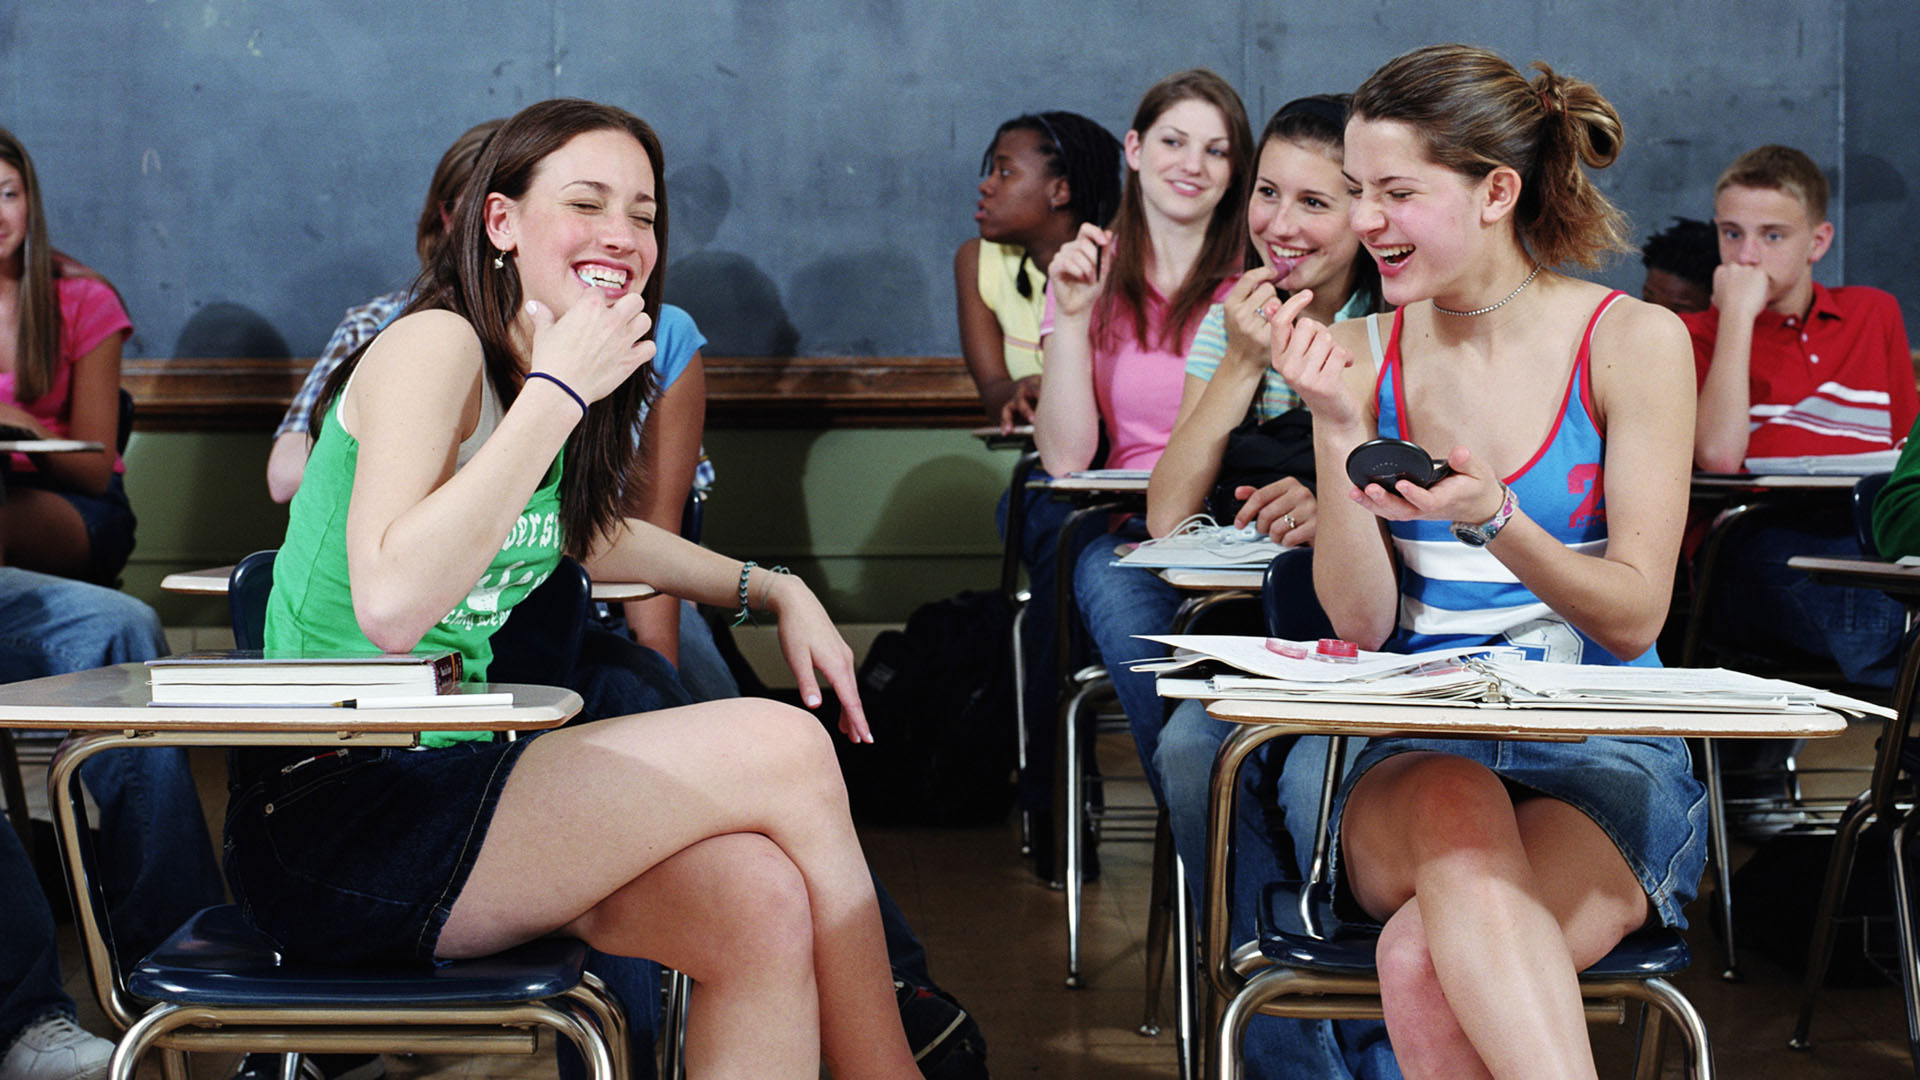 Teenagers (15-18) in classroom, girls laughing